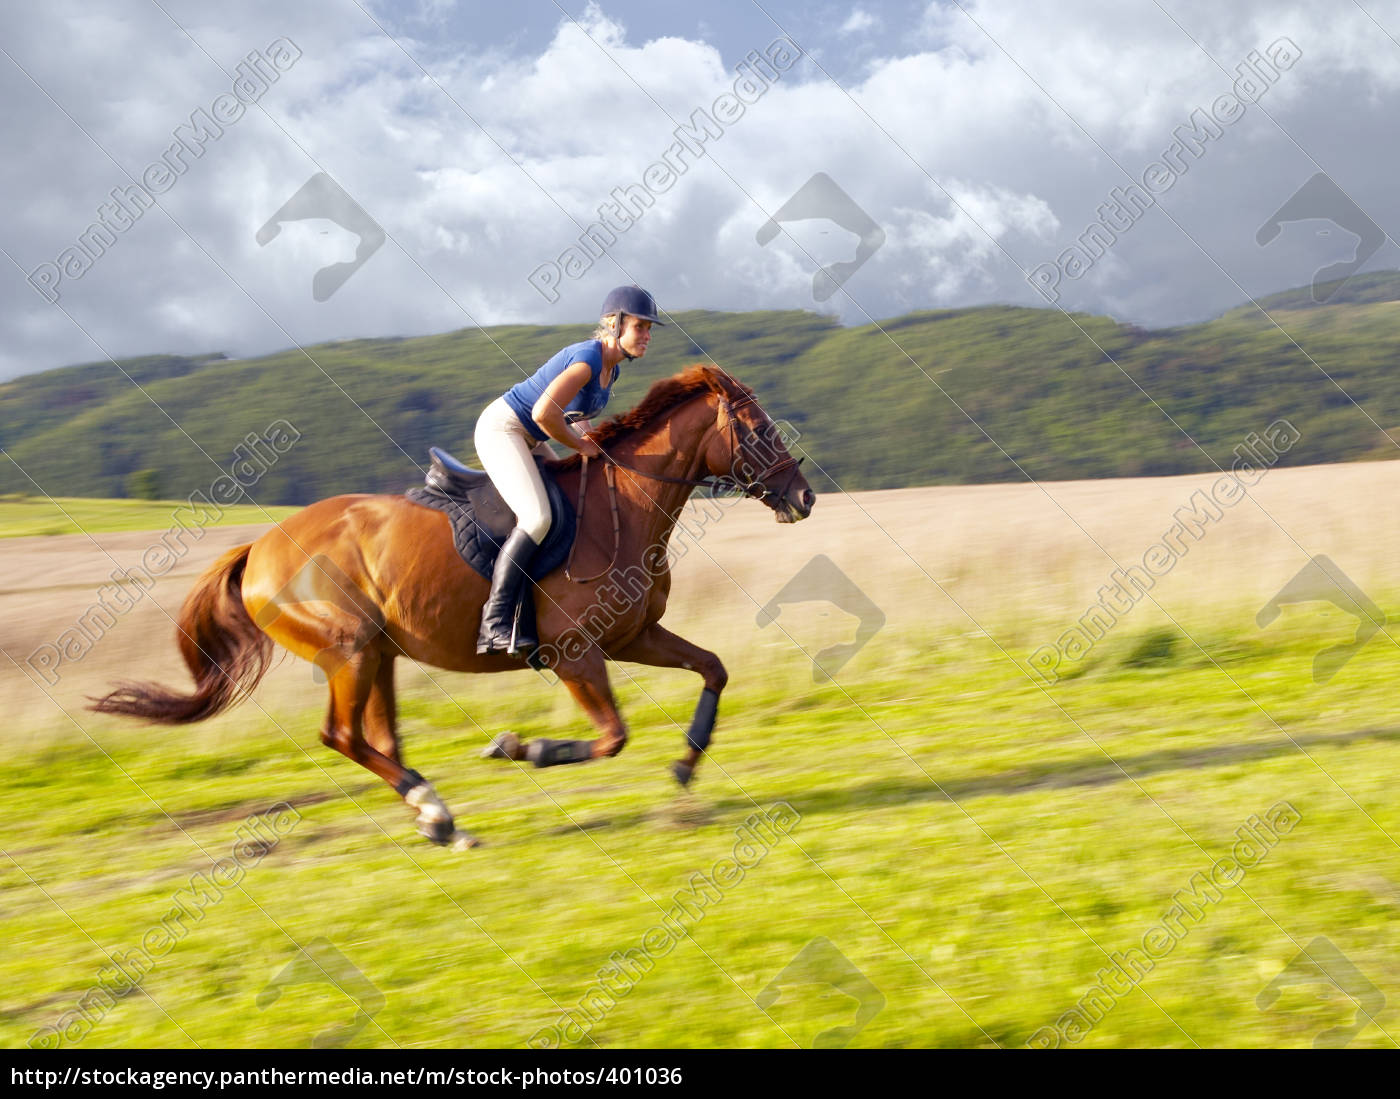 sunday, afternoon, horse, ride - 401036